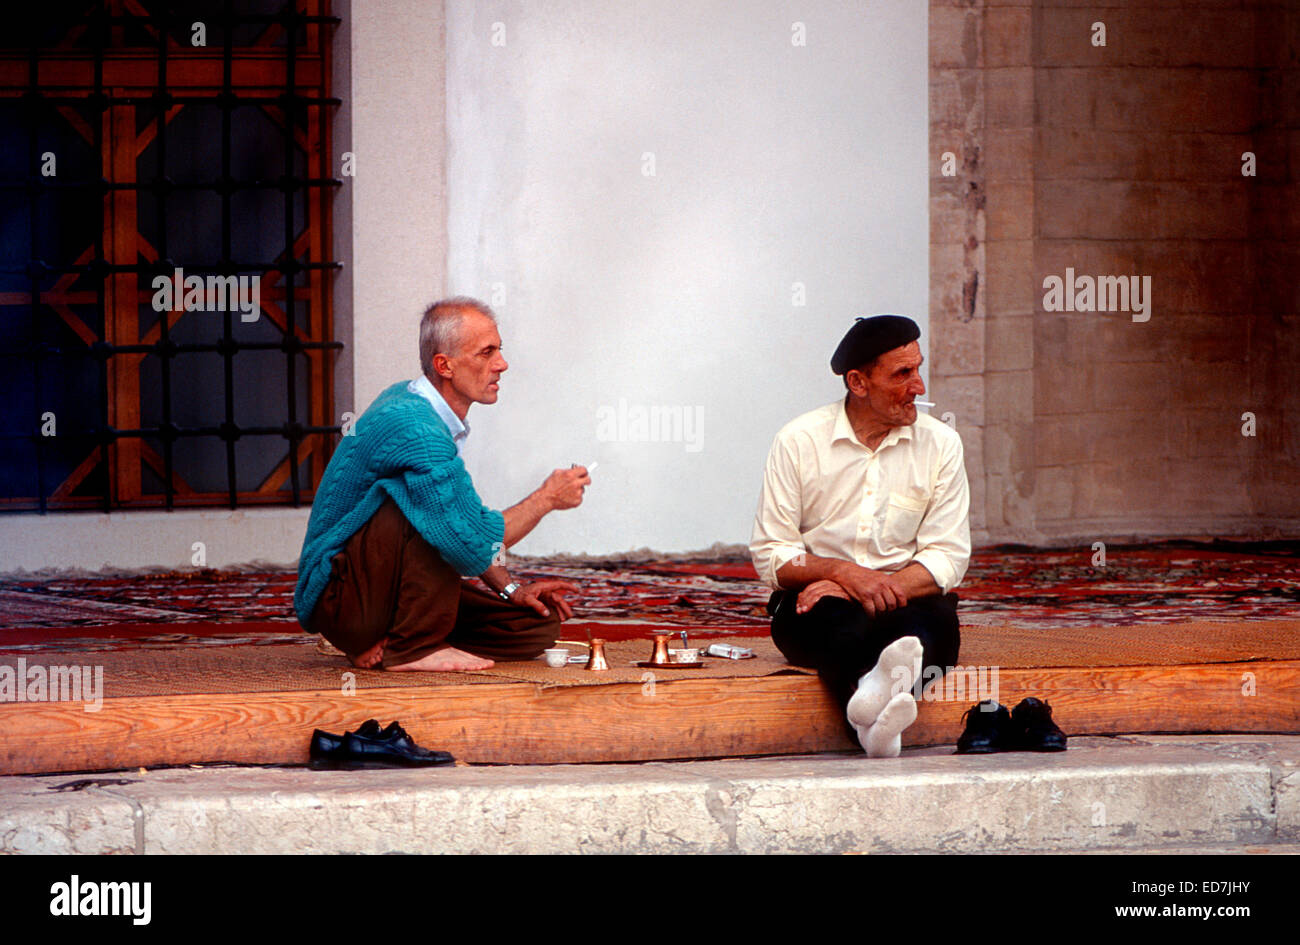 Sarajevo, Bosnia. Men drinking coffee and smoking on steps of Gazi Husref Beg Mosque. - Stock Image